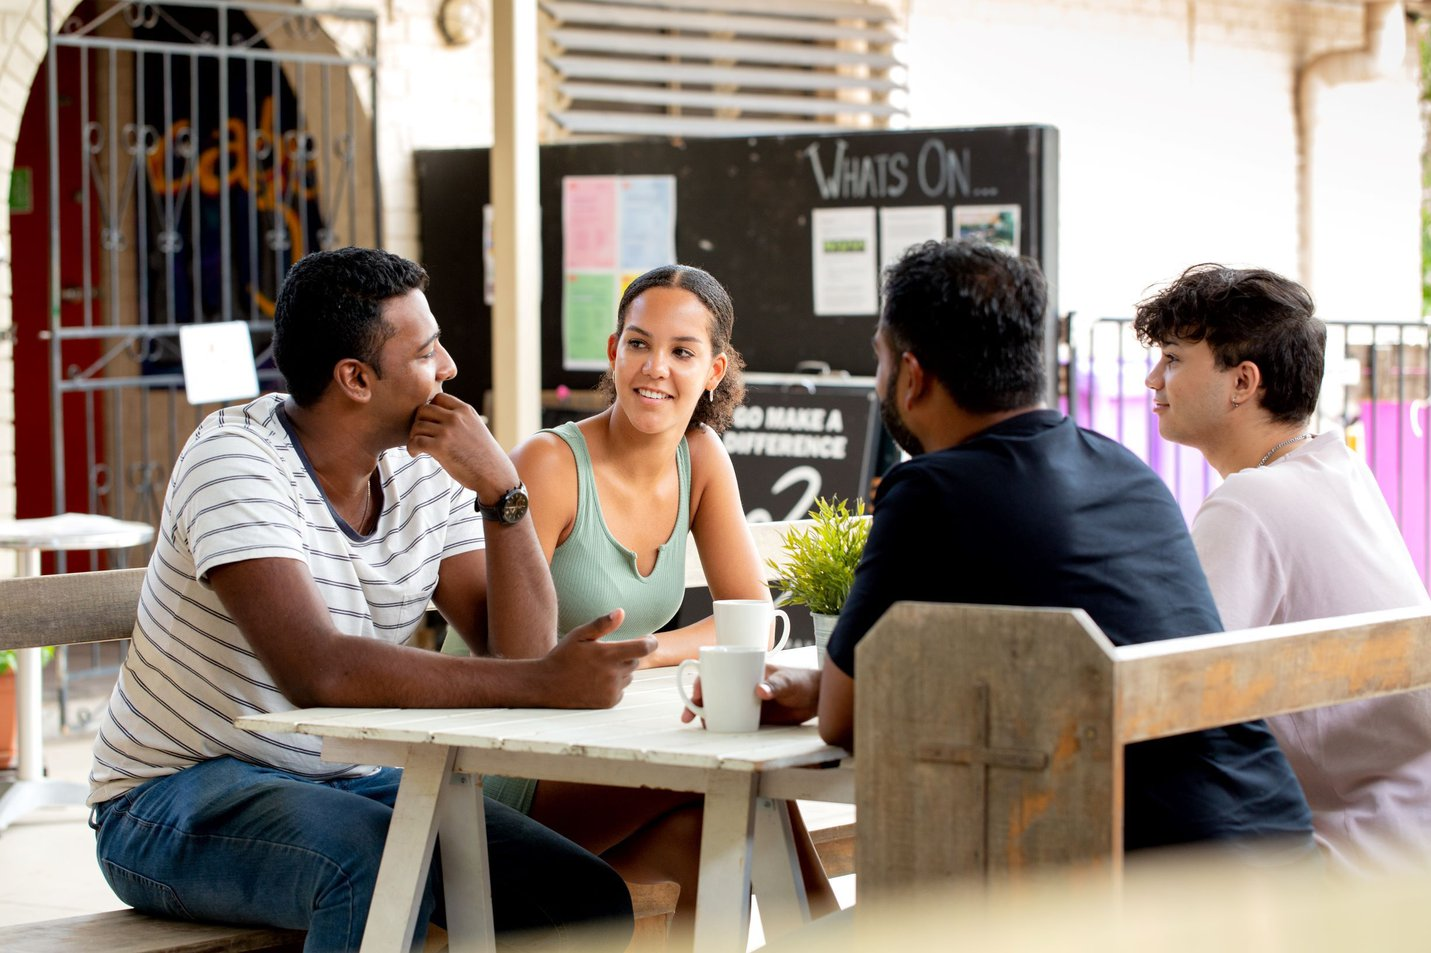 group_mentoring_table_discussion_outside_table.jpg